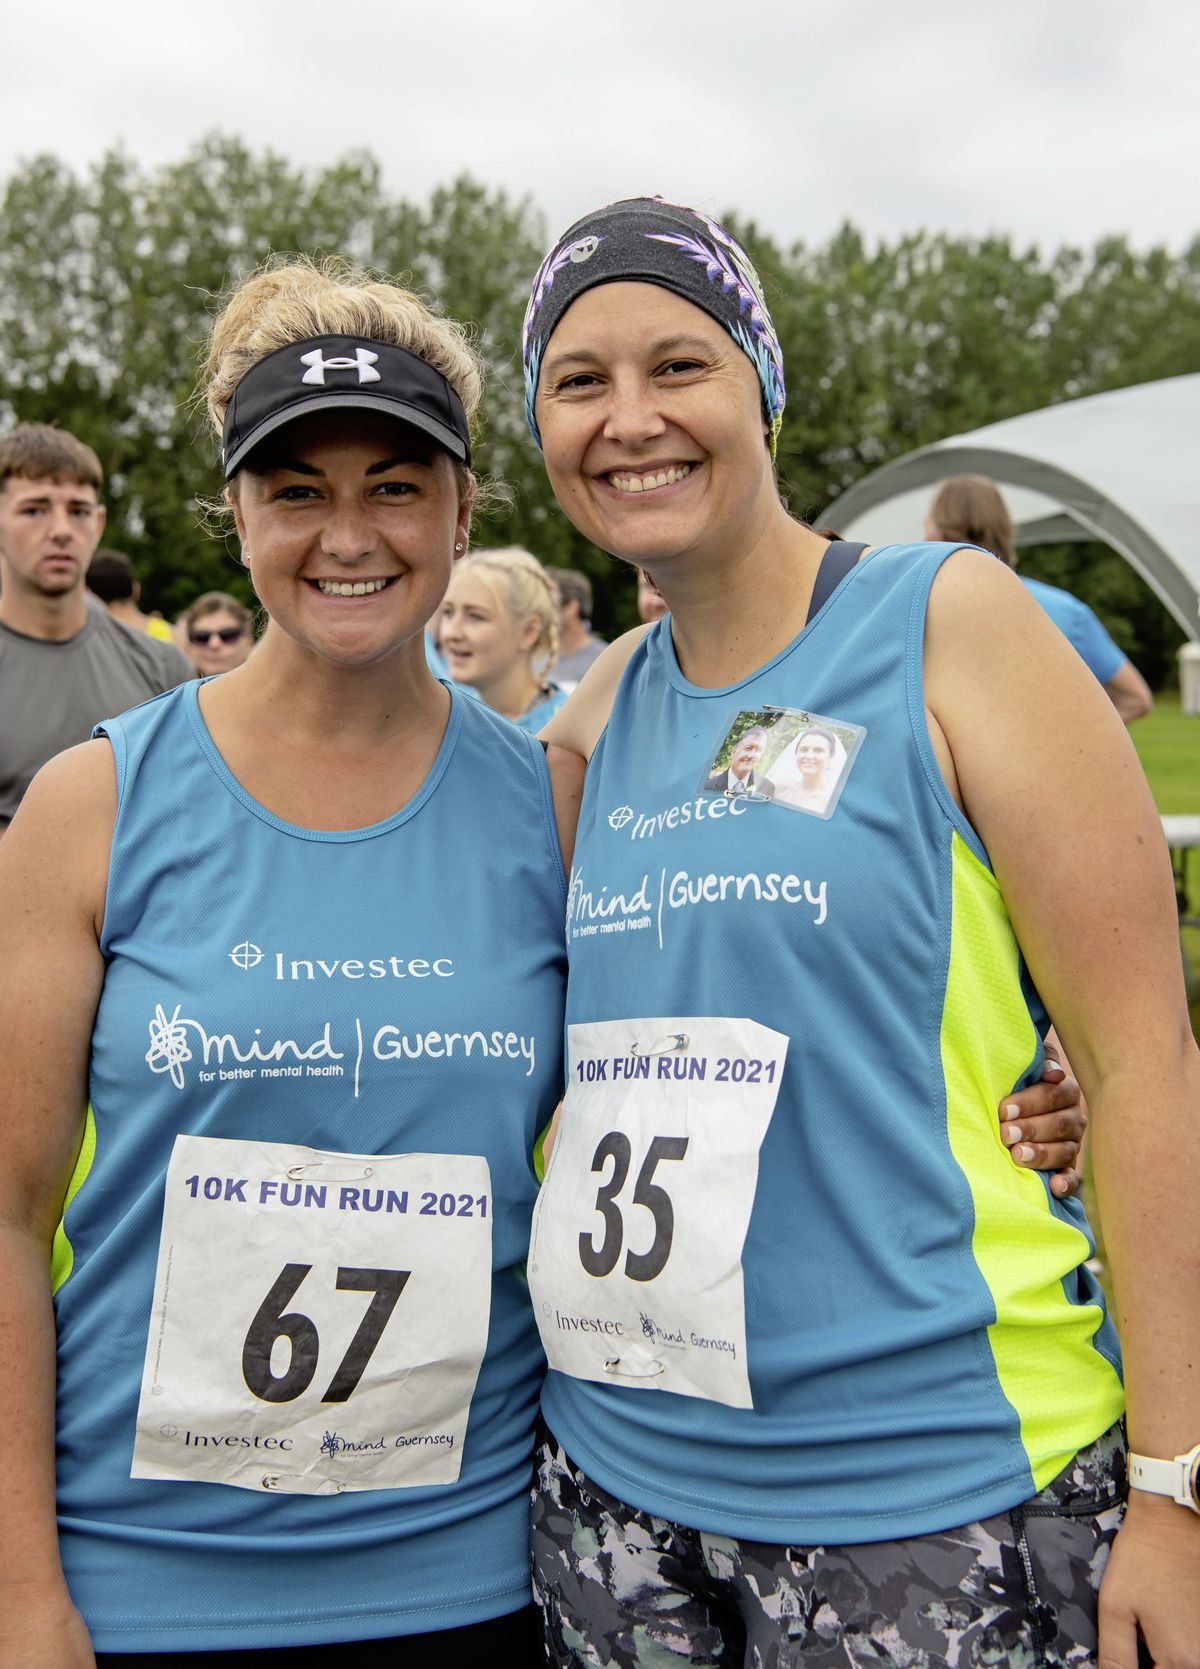 South Africans Irma Pretorious, left, and Joanna Jezewska-Oudhof were taking part for the first time. Joanna was running in memory of her father, Witold Jezewski.